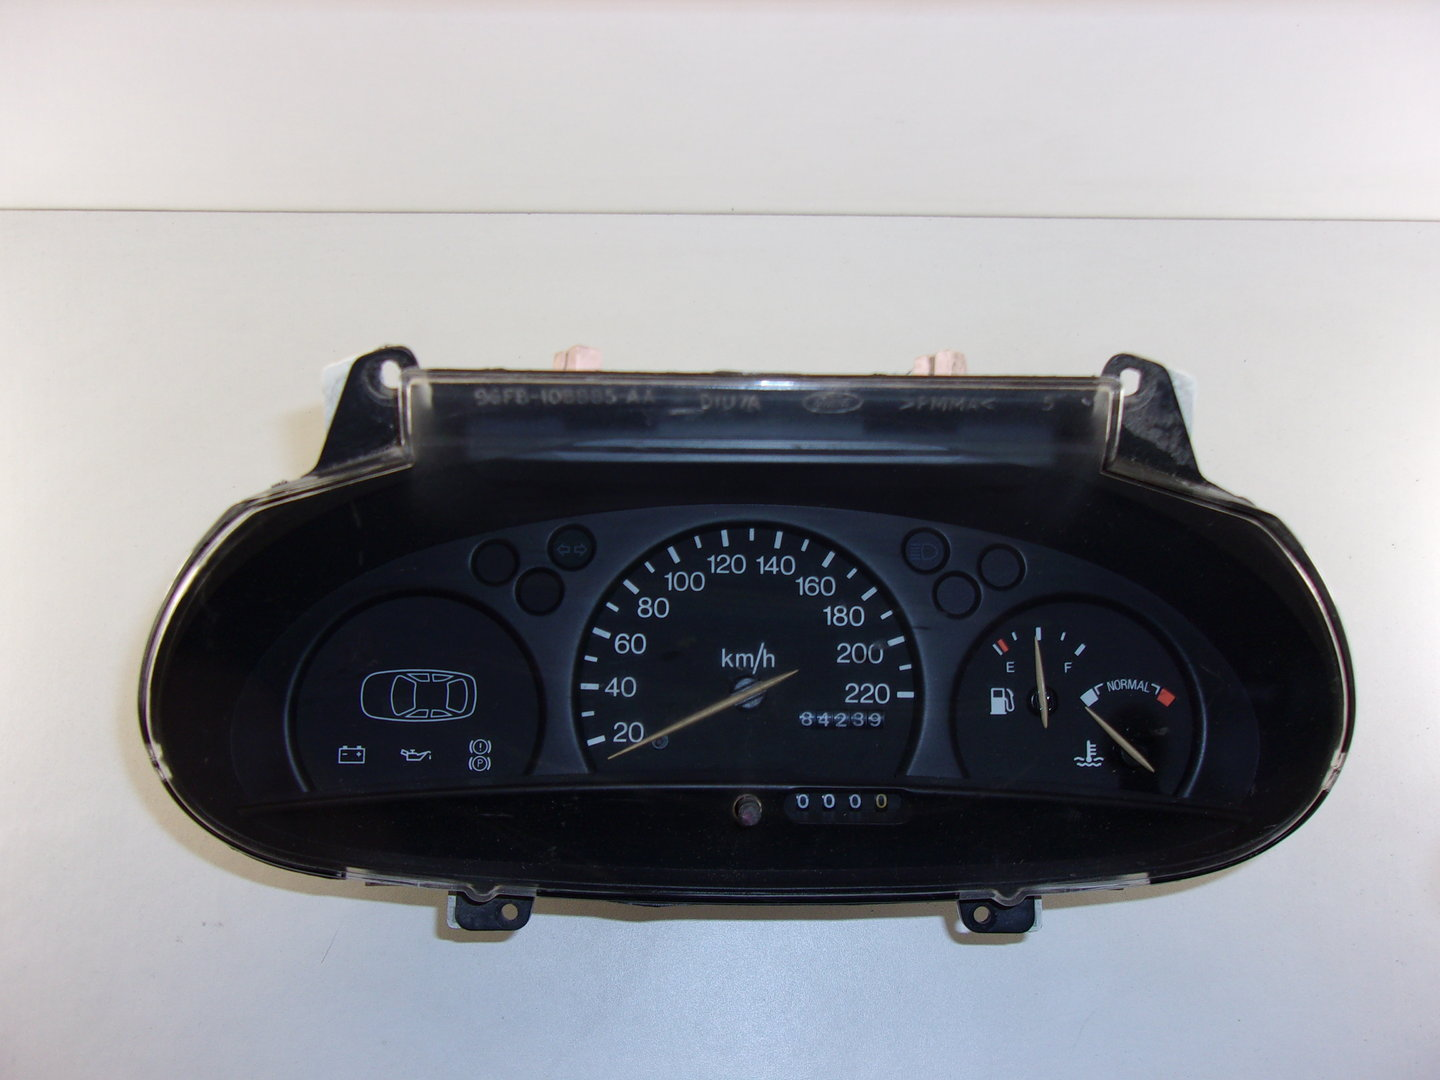 Alzgo compteur ford fiesta ref: 96fb-10849-ad